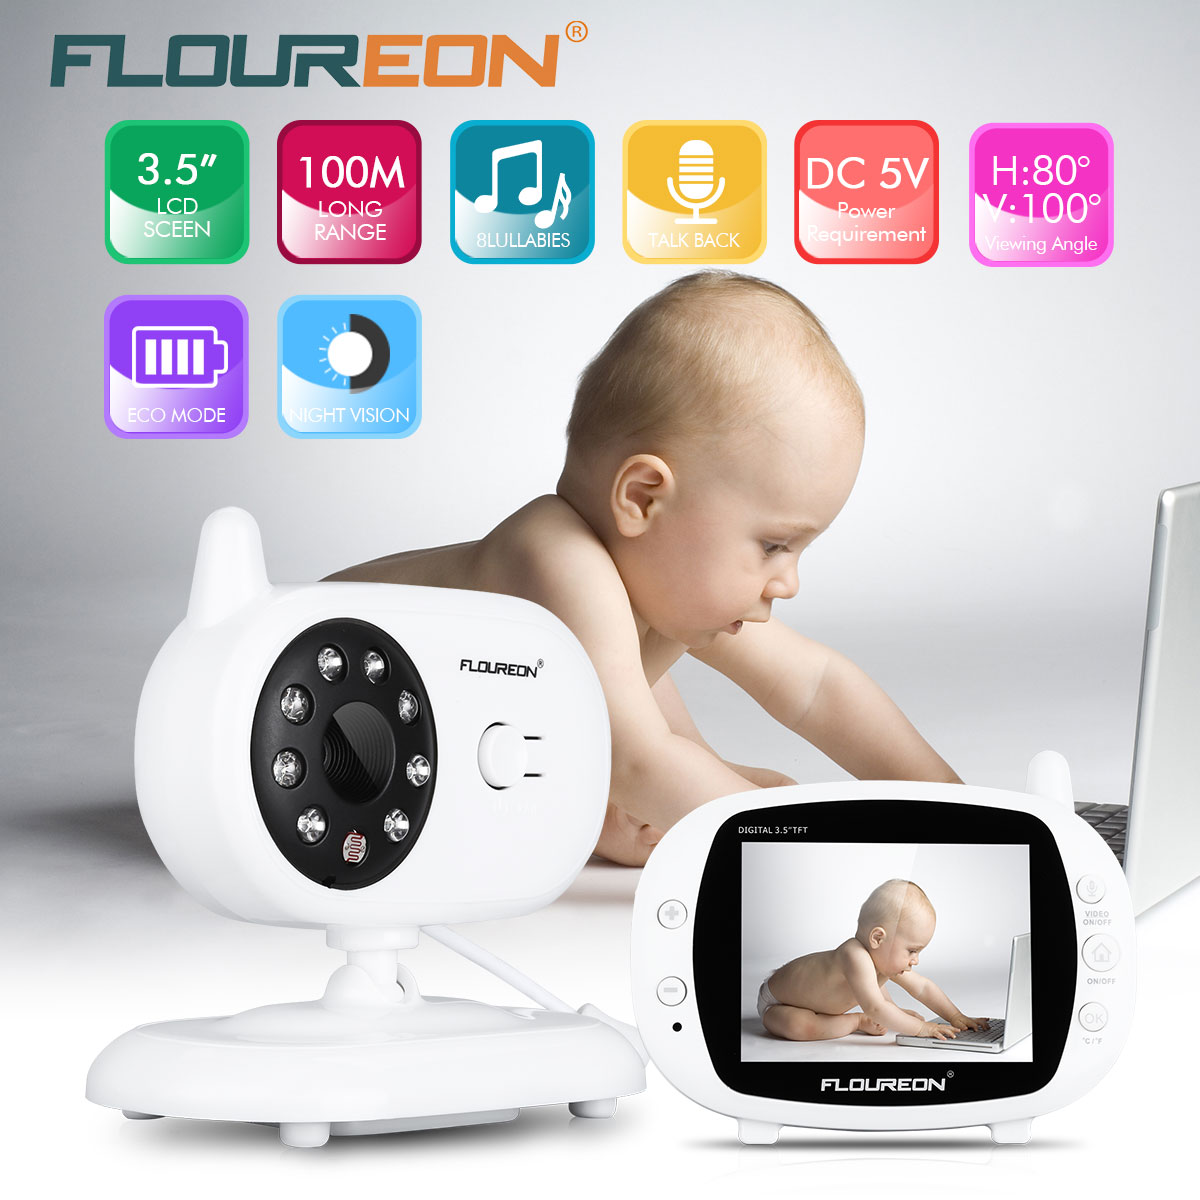 dfec7a46536f Surveillance Cameras Cheap Surveillance Cameras FLOUREON 3.5     Digital  Wireless Baby.We offer the best wholesale price